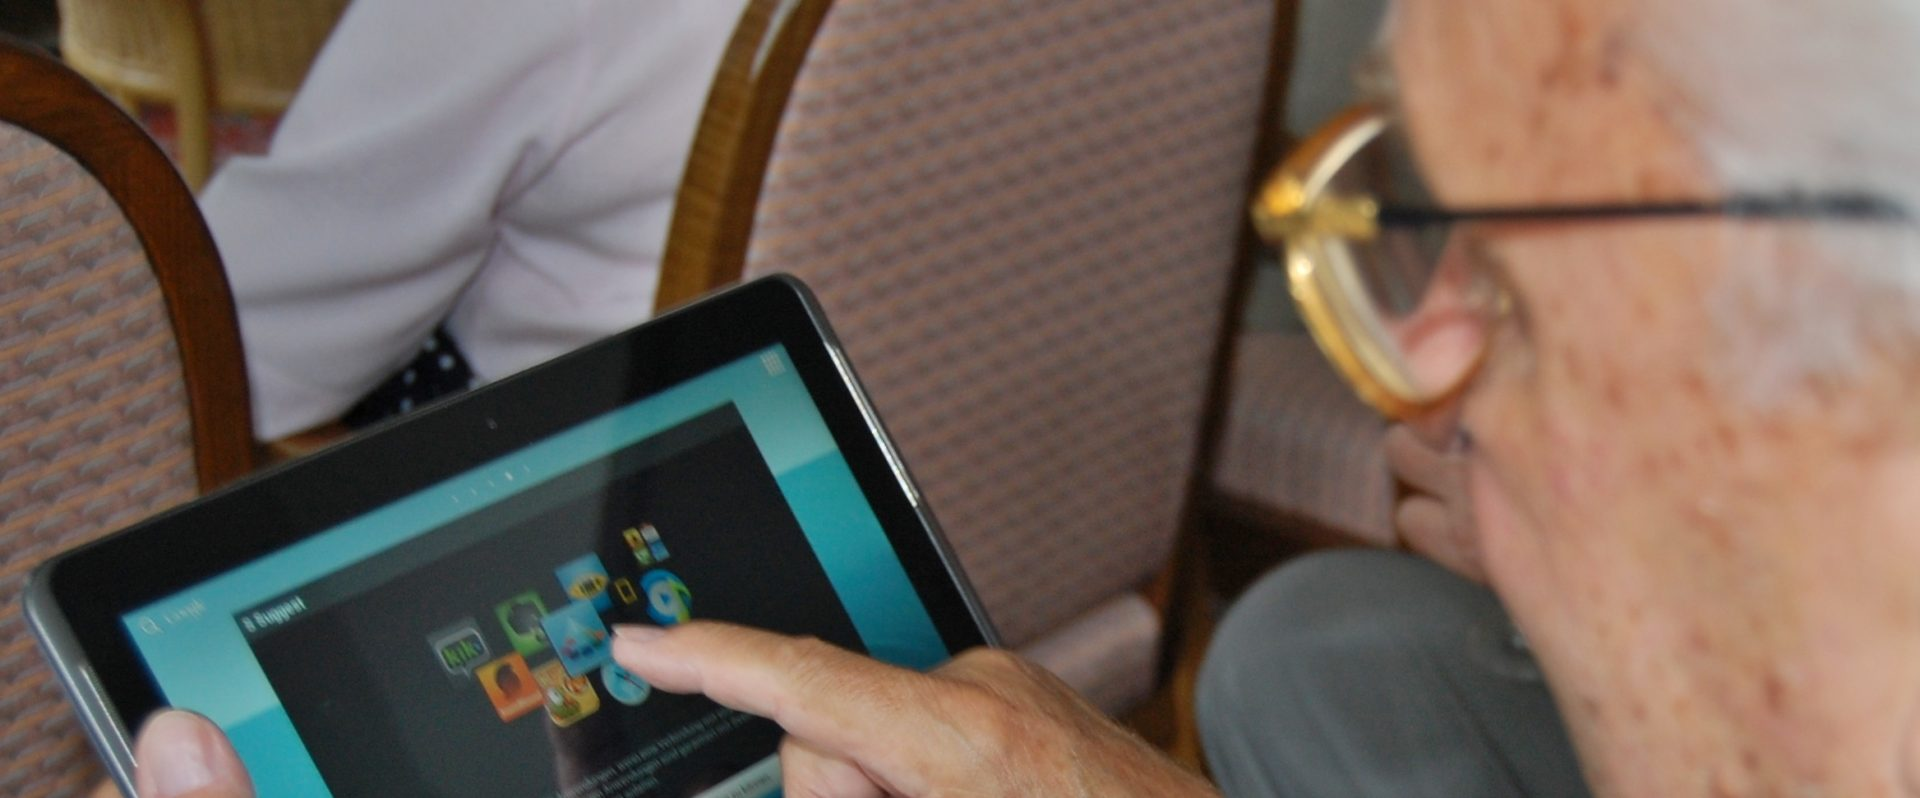 Older gentleman using an app on a tablet computer